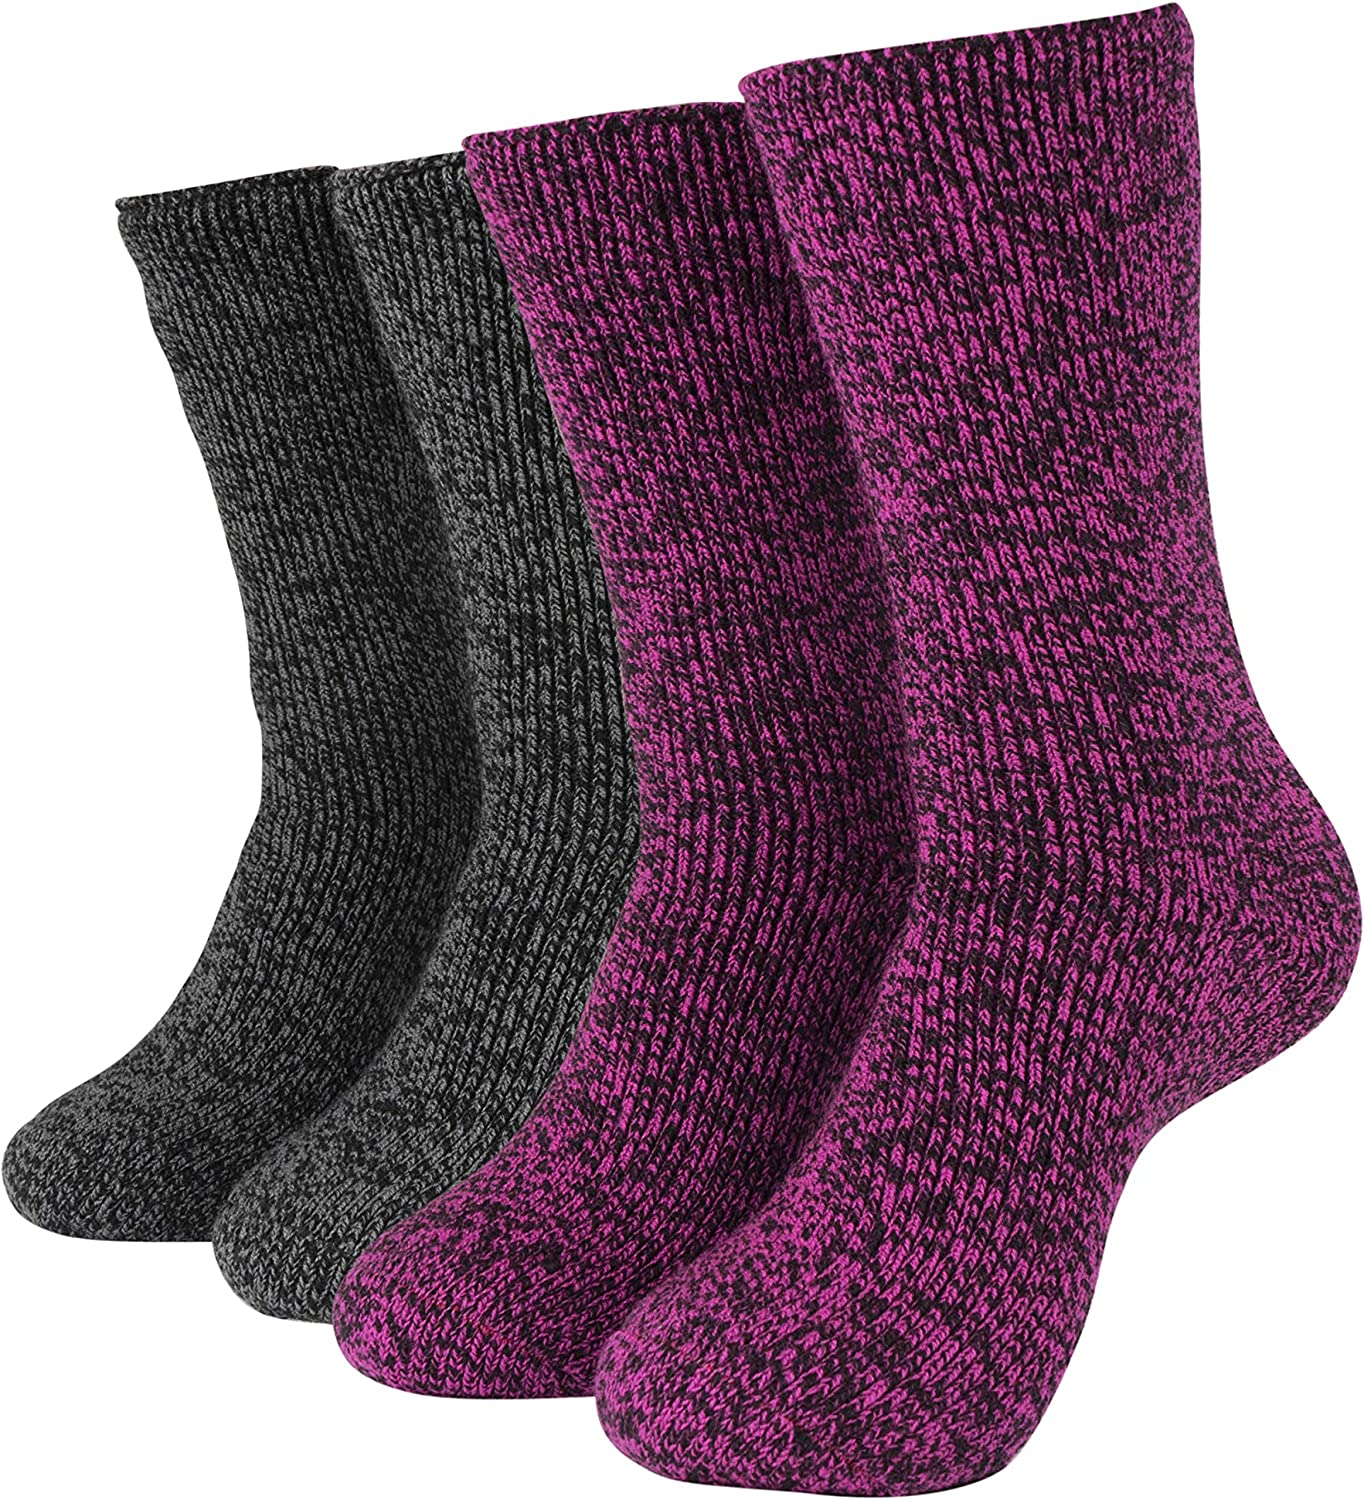 Hot Feet Women's 2 Pack Warm Cozy Thermal Socks - Thick Insulated Crew for Cold Winter Weather, Shoe Size 4-10